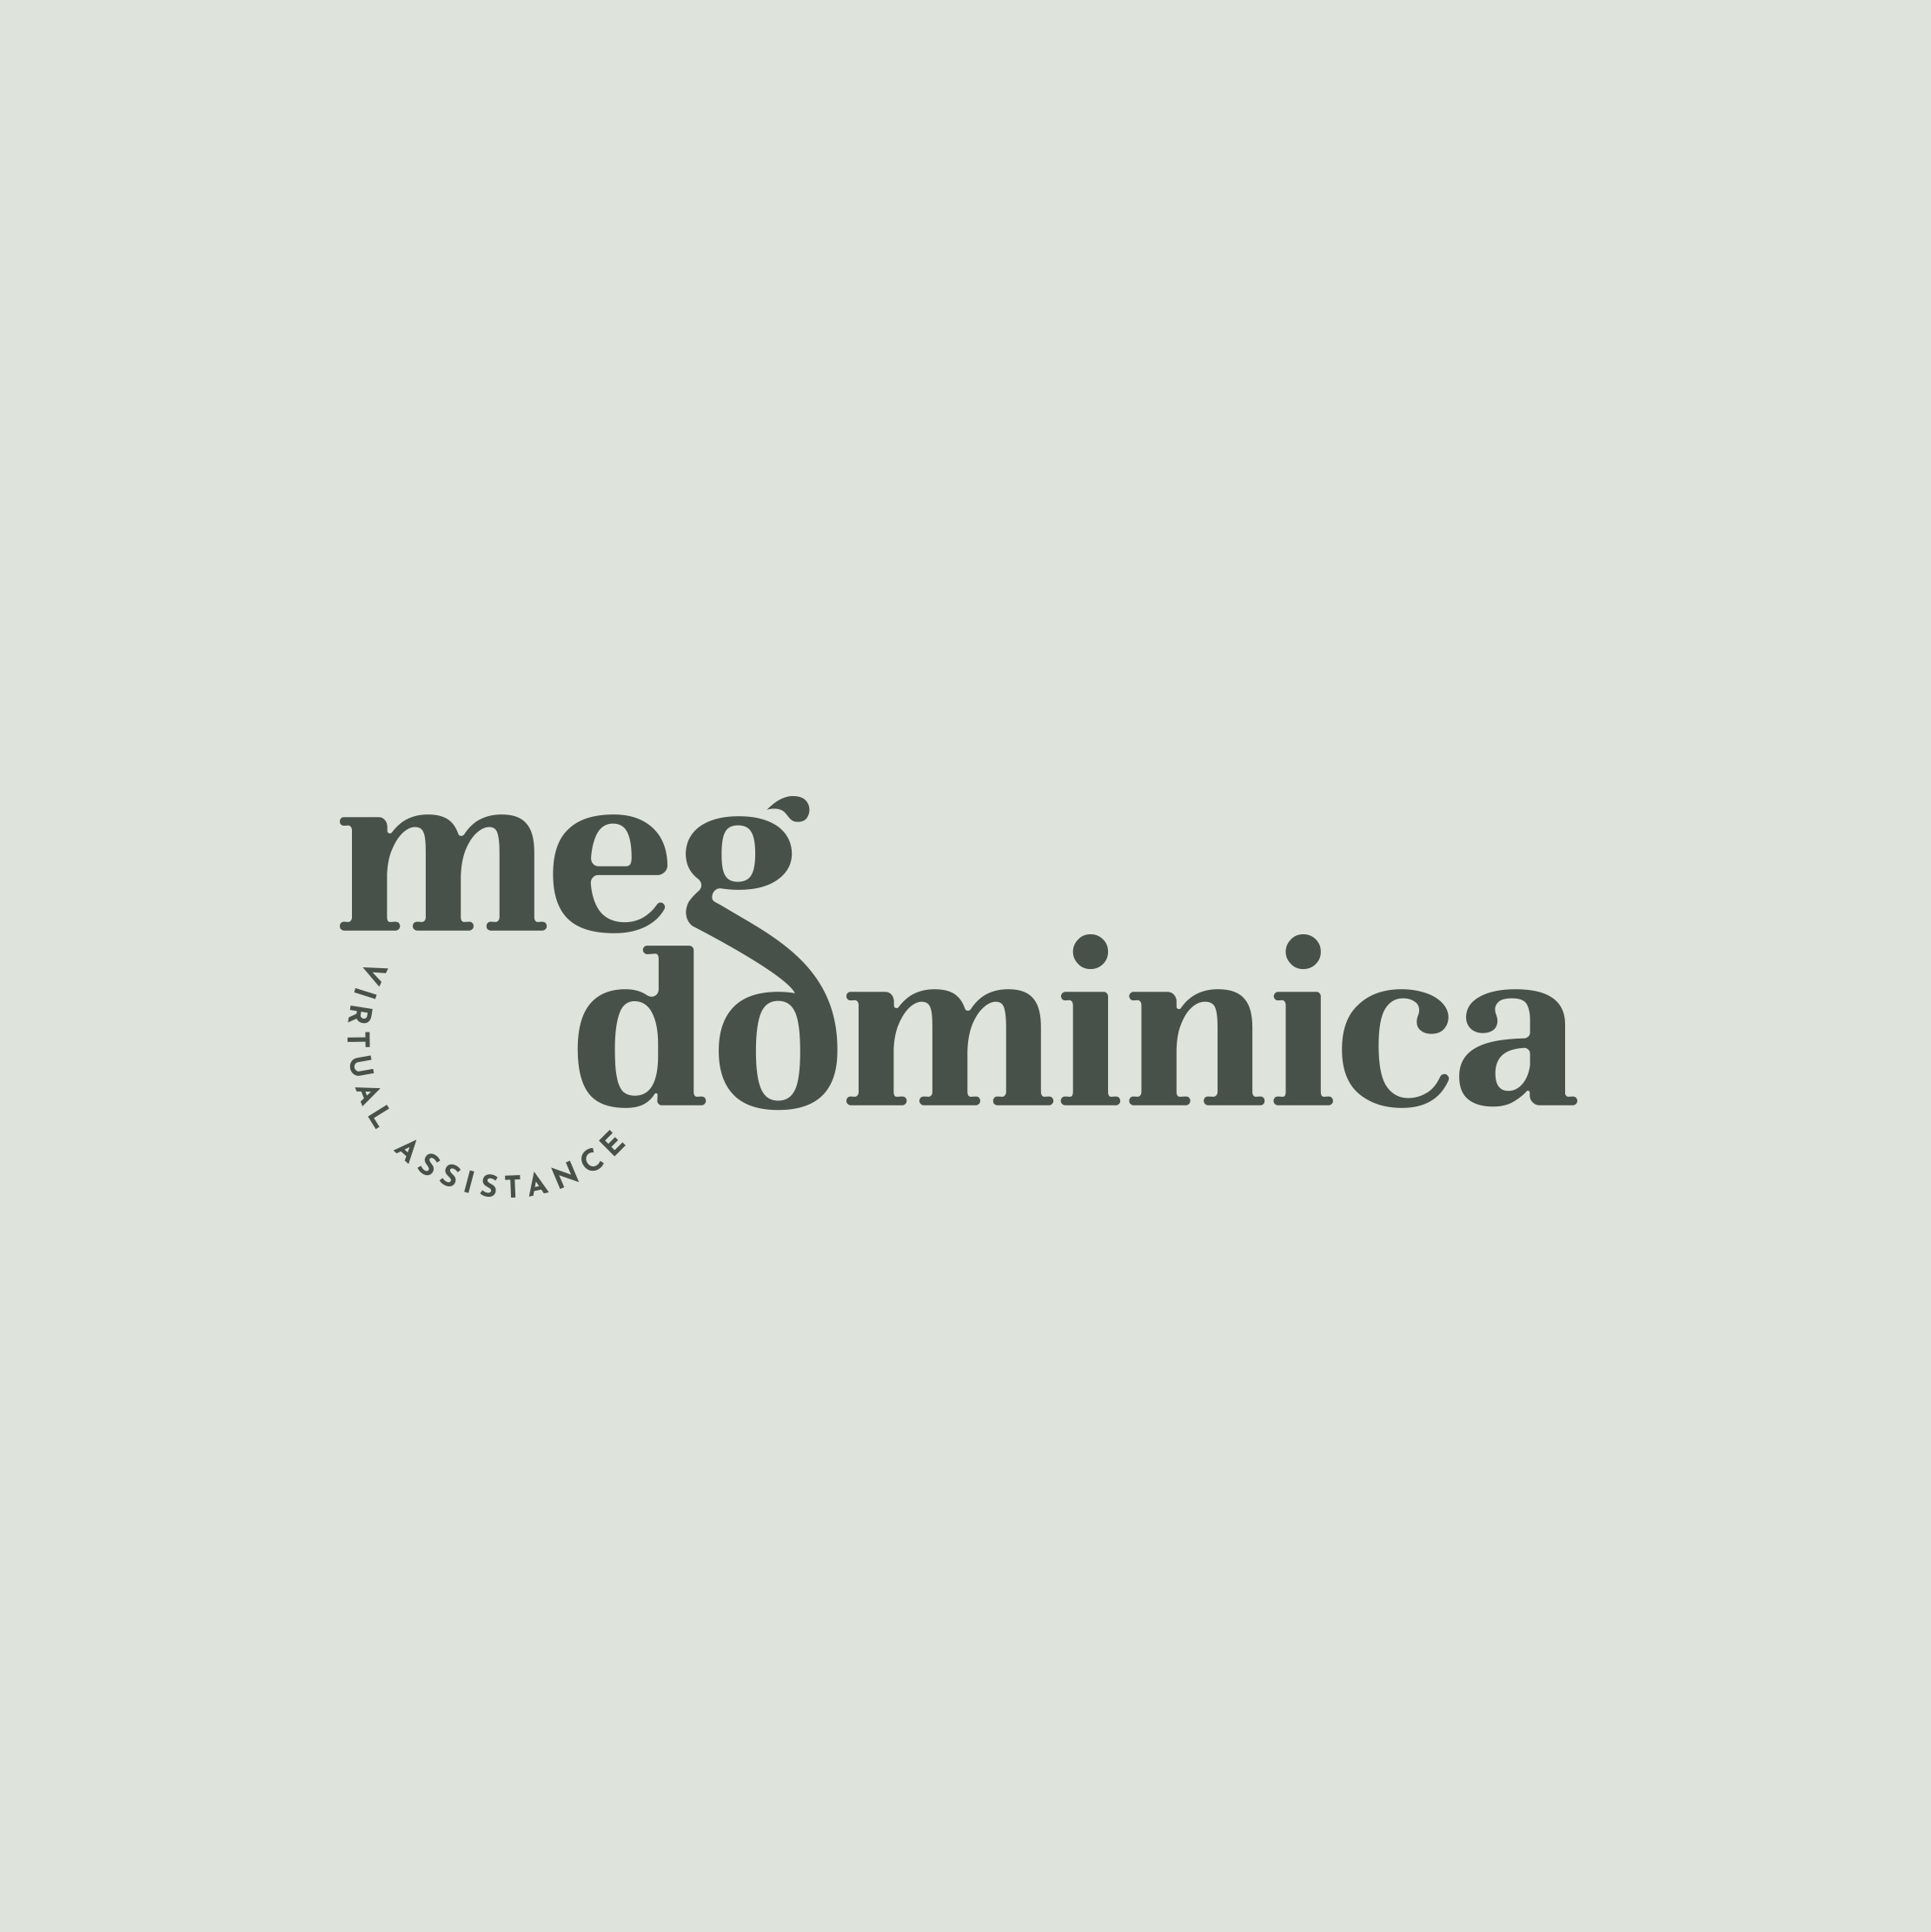 Meg Dominica - Logo Design